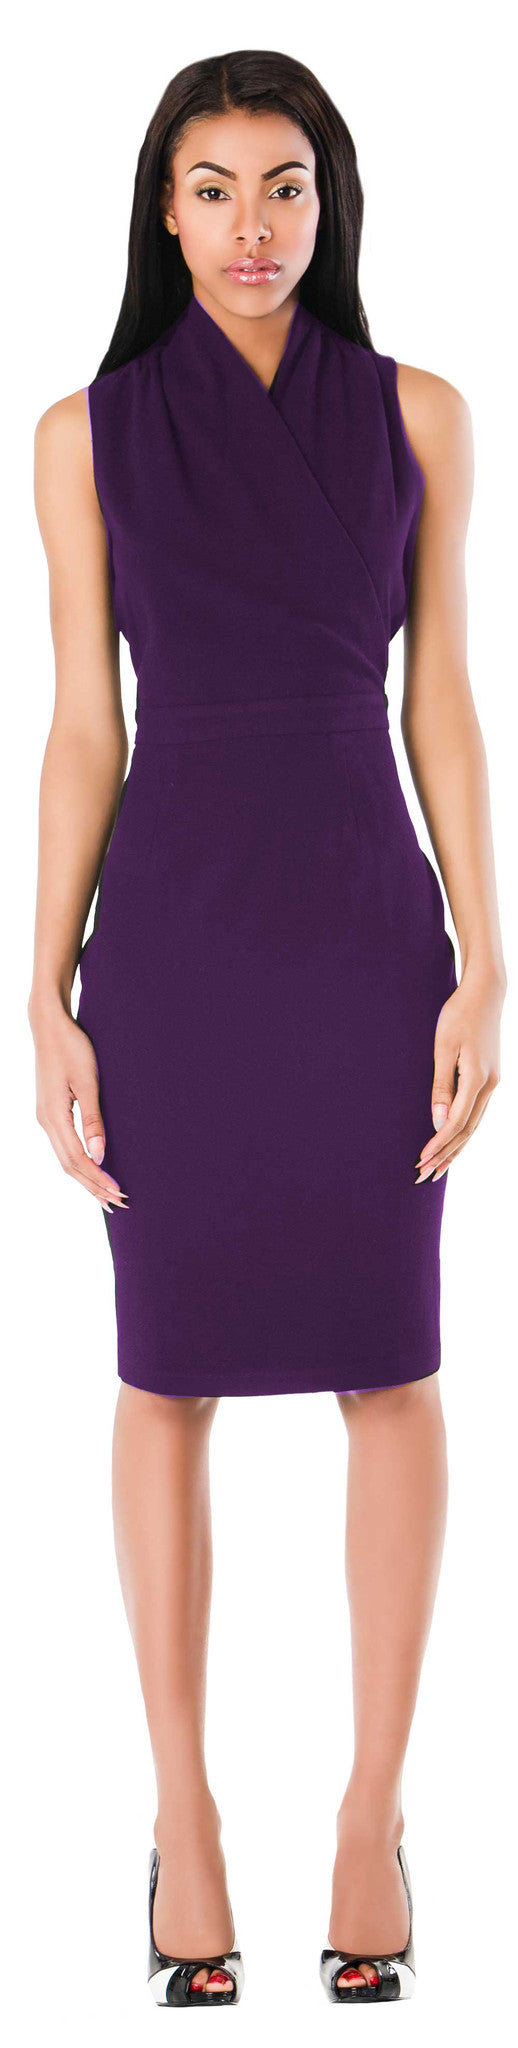 New York Dress/ Purple